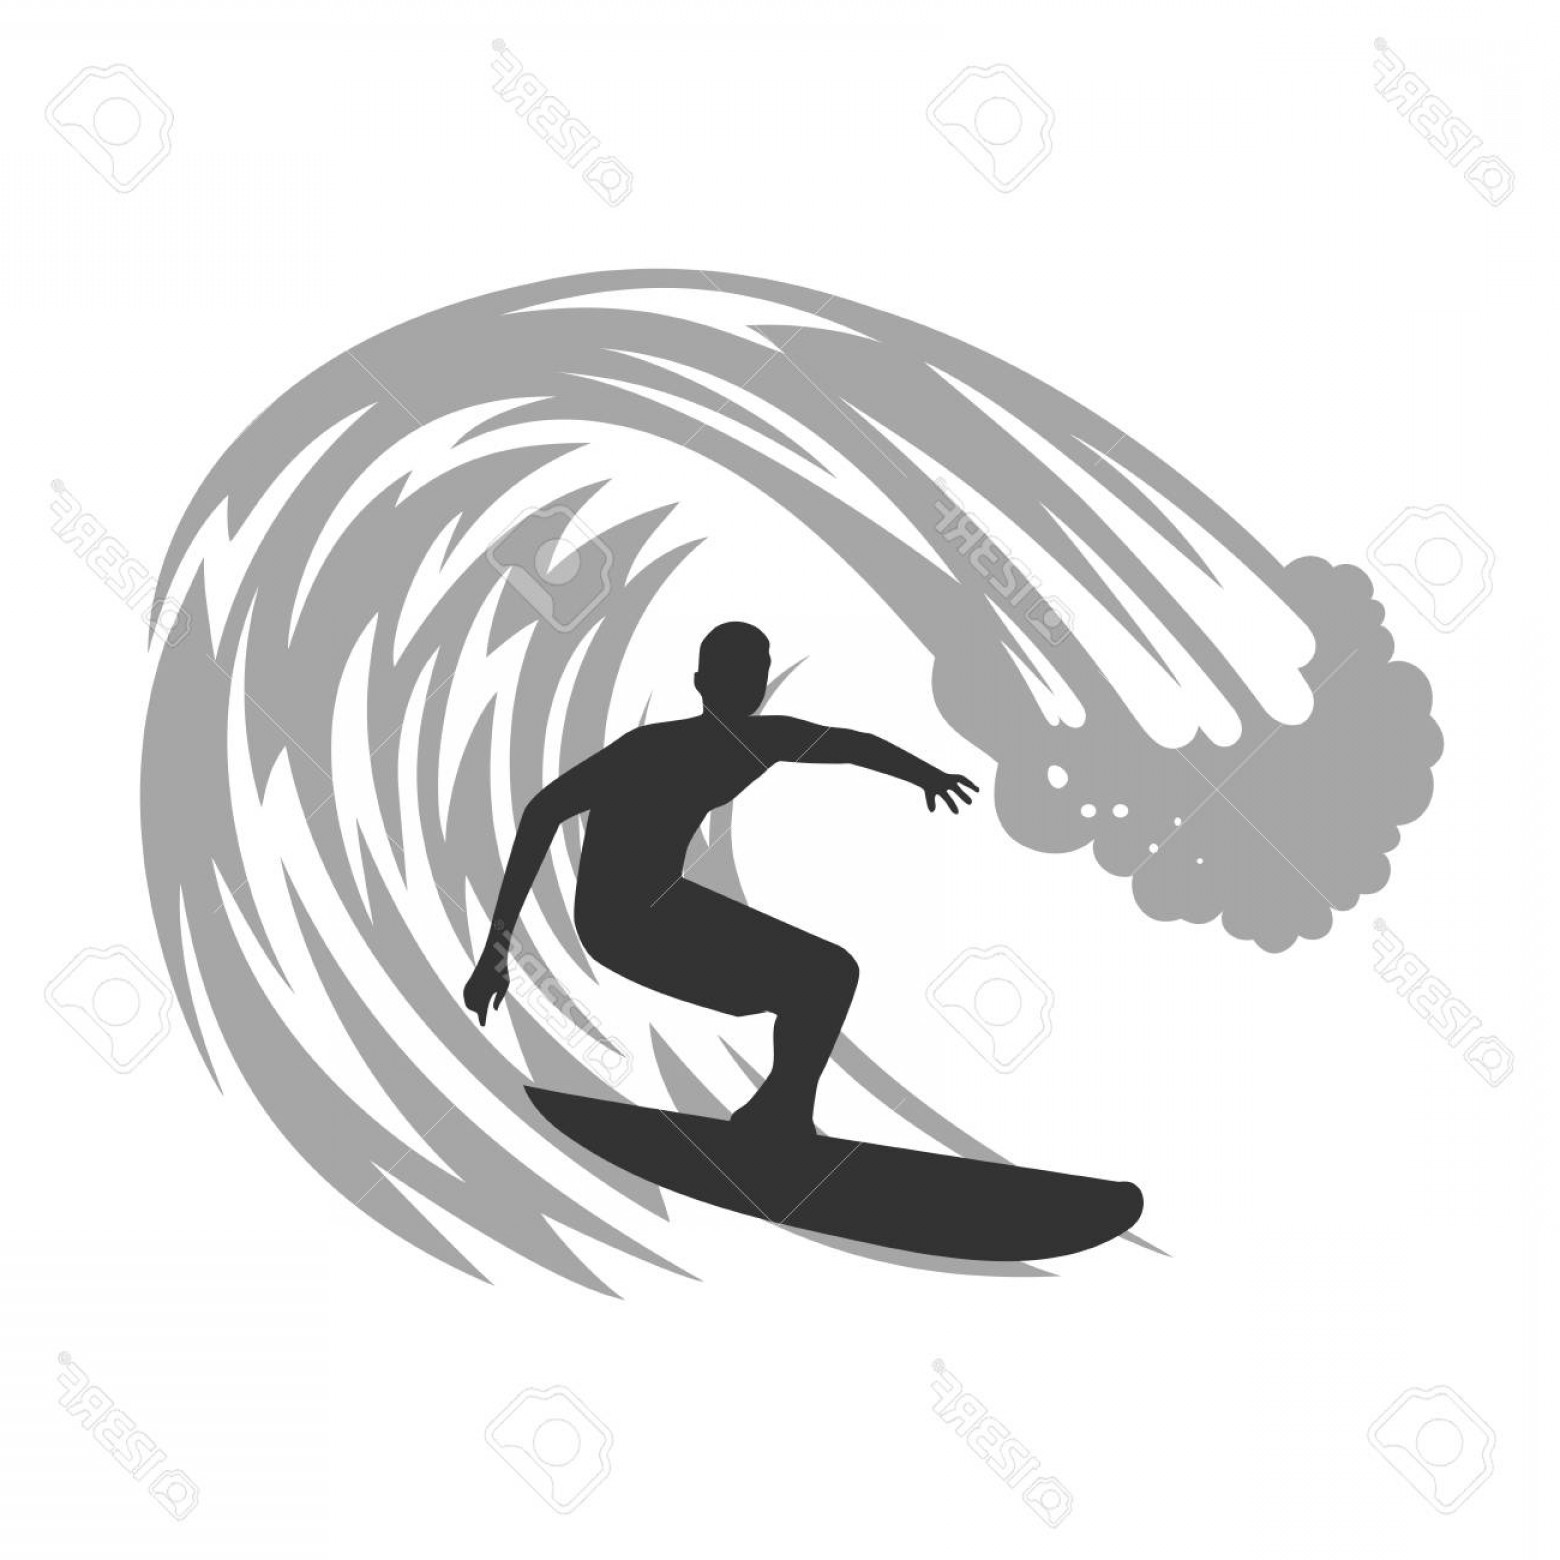 Waves With Surfer Silhouette Vector: Photostock Vector Surfer On Wave Vector Illustration